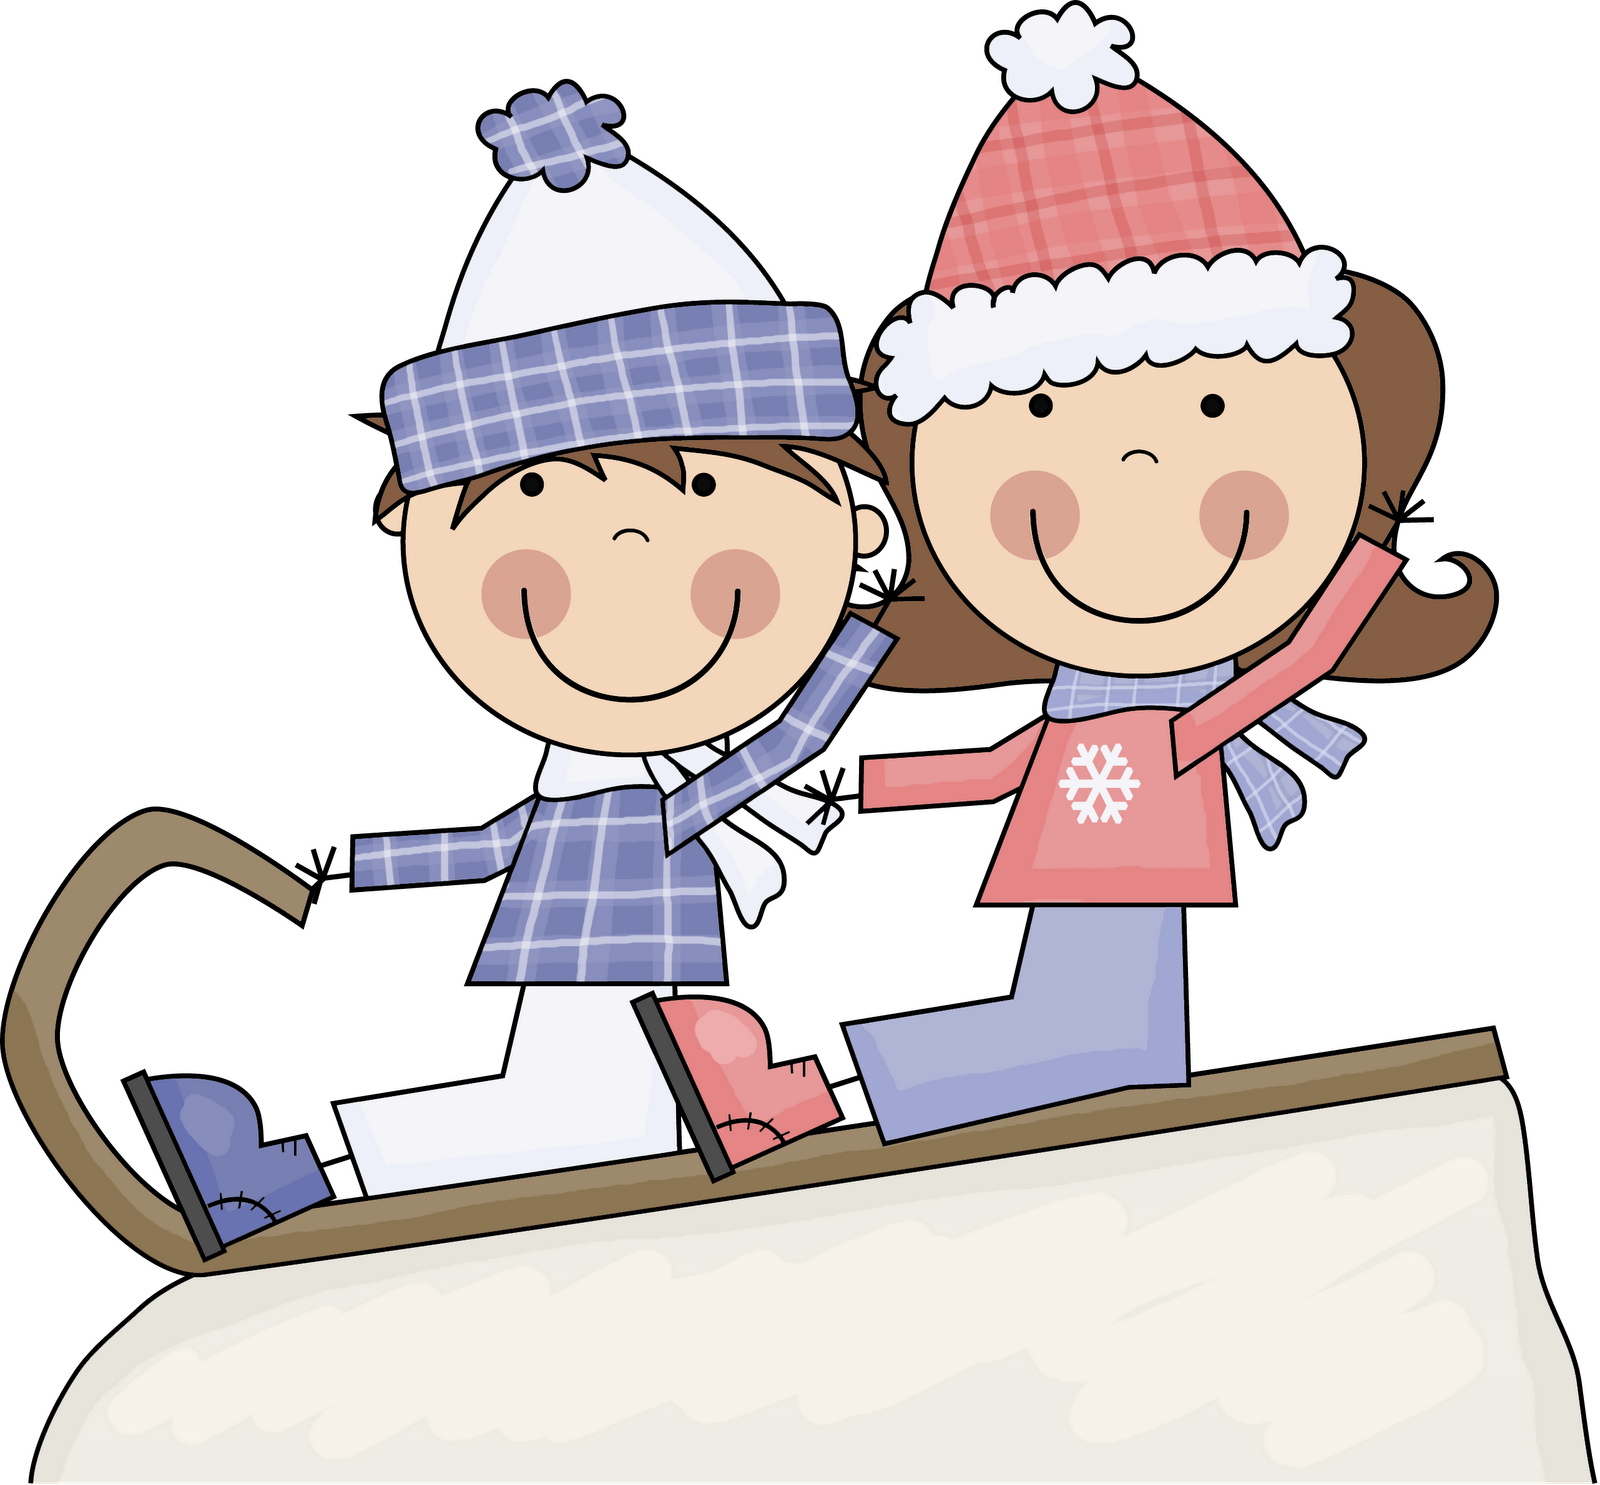 Kids playing in snow clipart transparent background svg royalty free library Playing in snow clipart clipart images gallery for free ... svg royalty free library